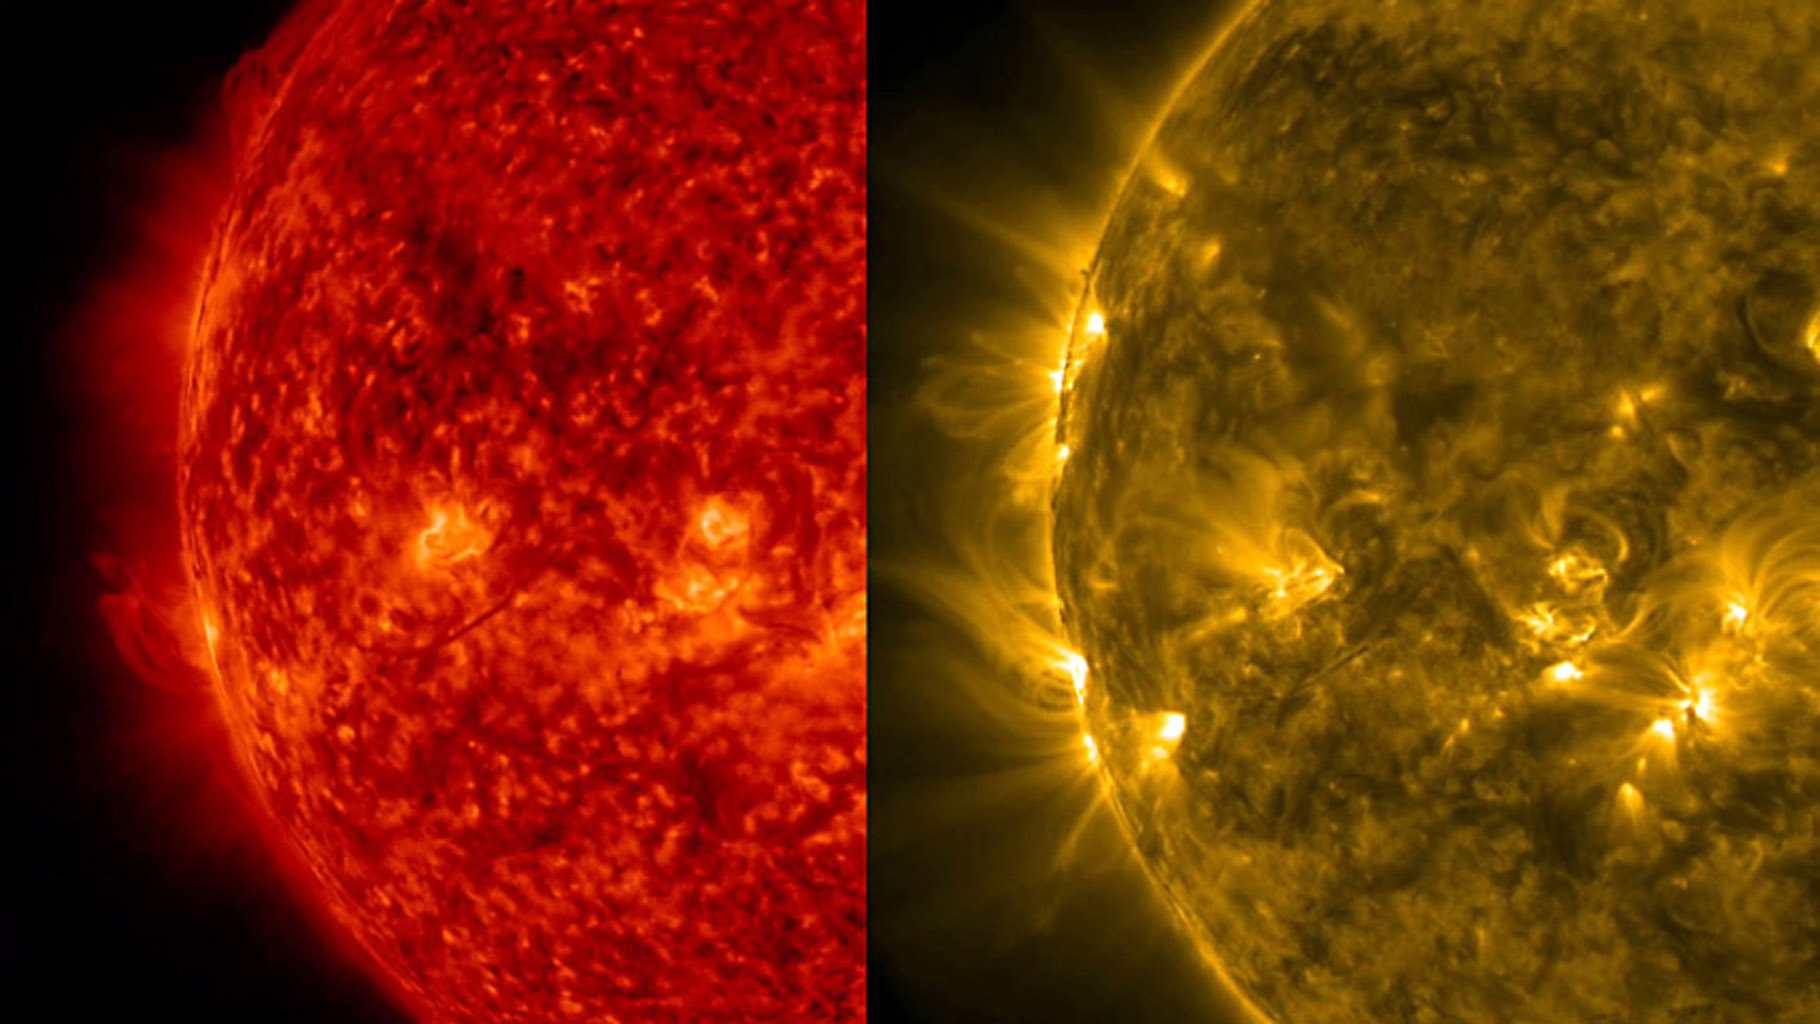 This side-by-side rendering of the Sun at the same time in two different wavelengths of extreme ultraviolet light helps to visualize the differing features visible in each wavelength (Dec. 10-11, 2015). This image is from NASA's Solar Dynamics Observatory